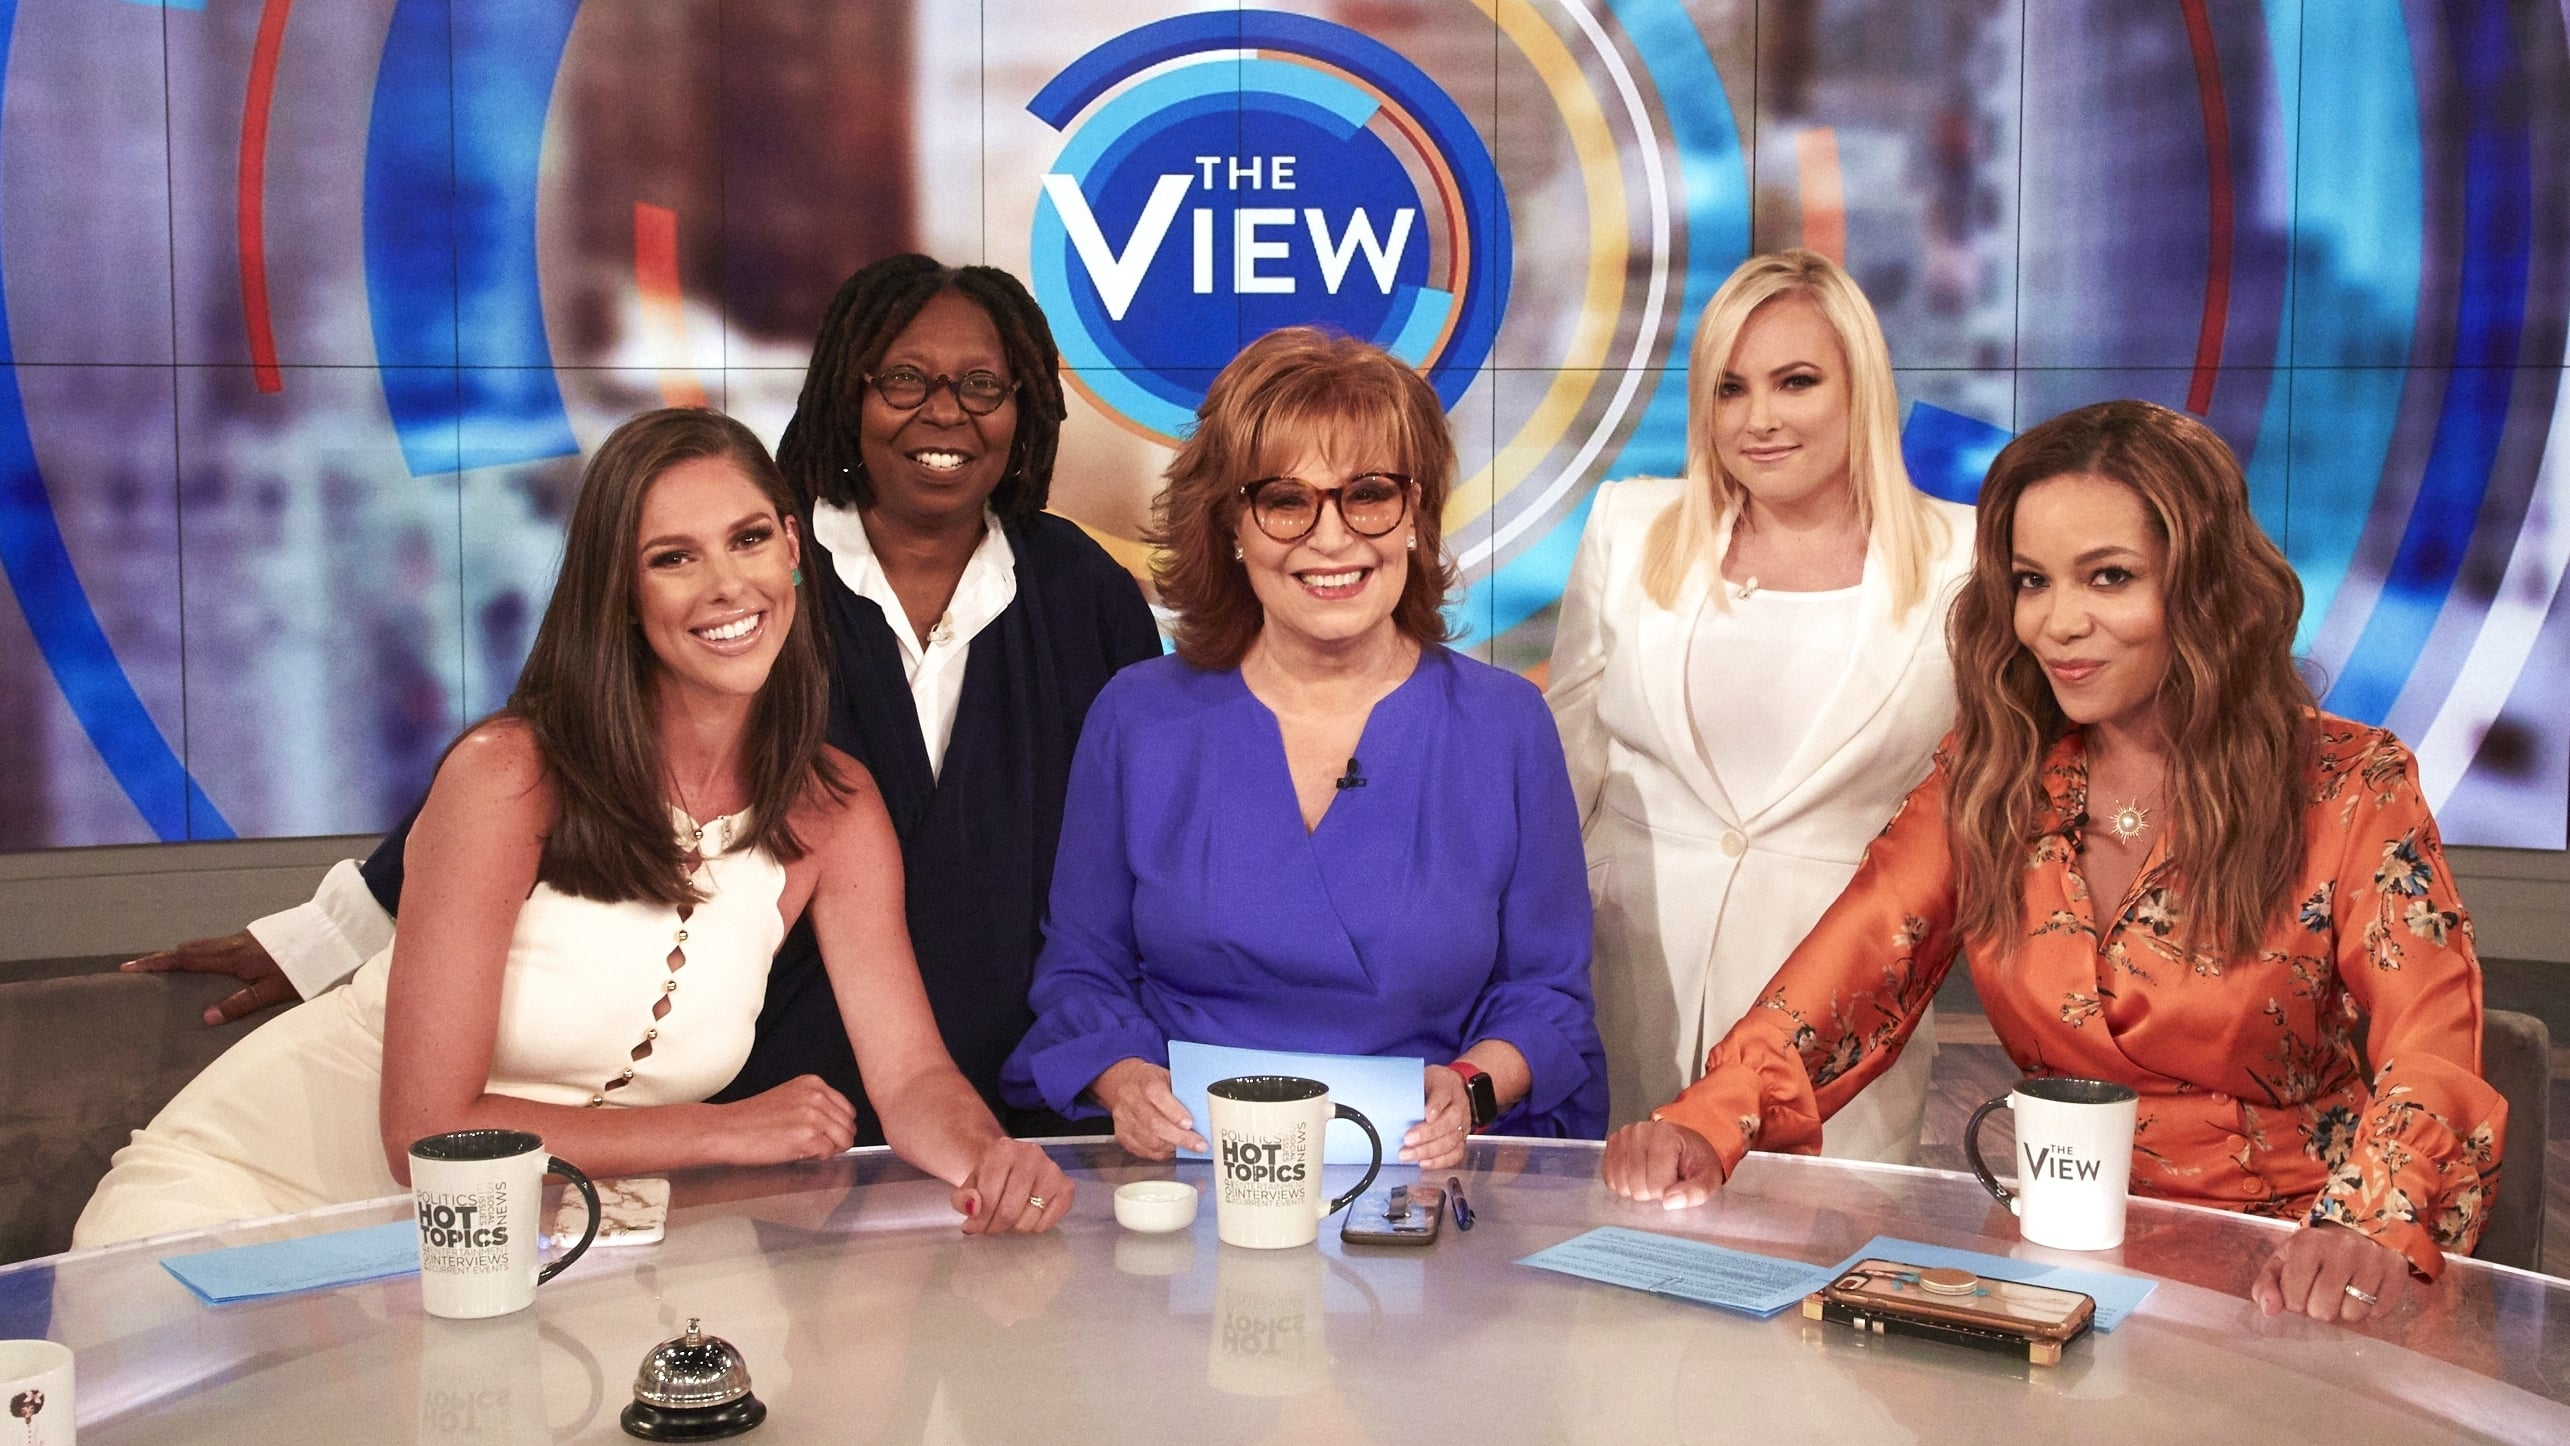 The View - Season 3 Episode 93 : Season 3, Episode 93